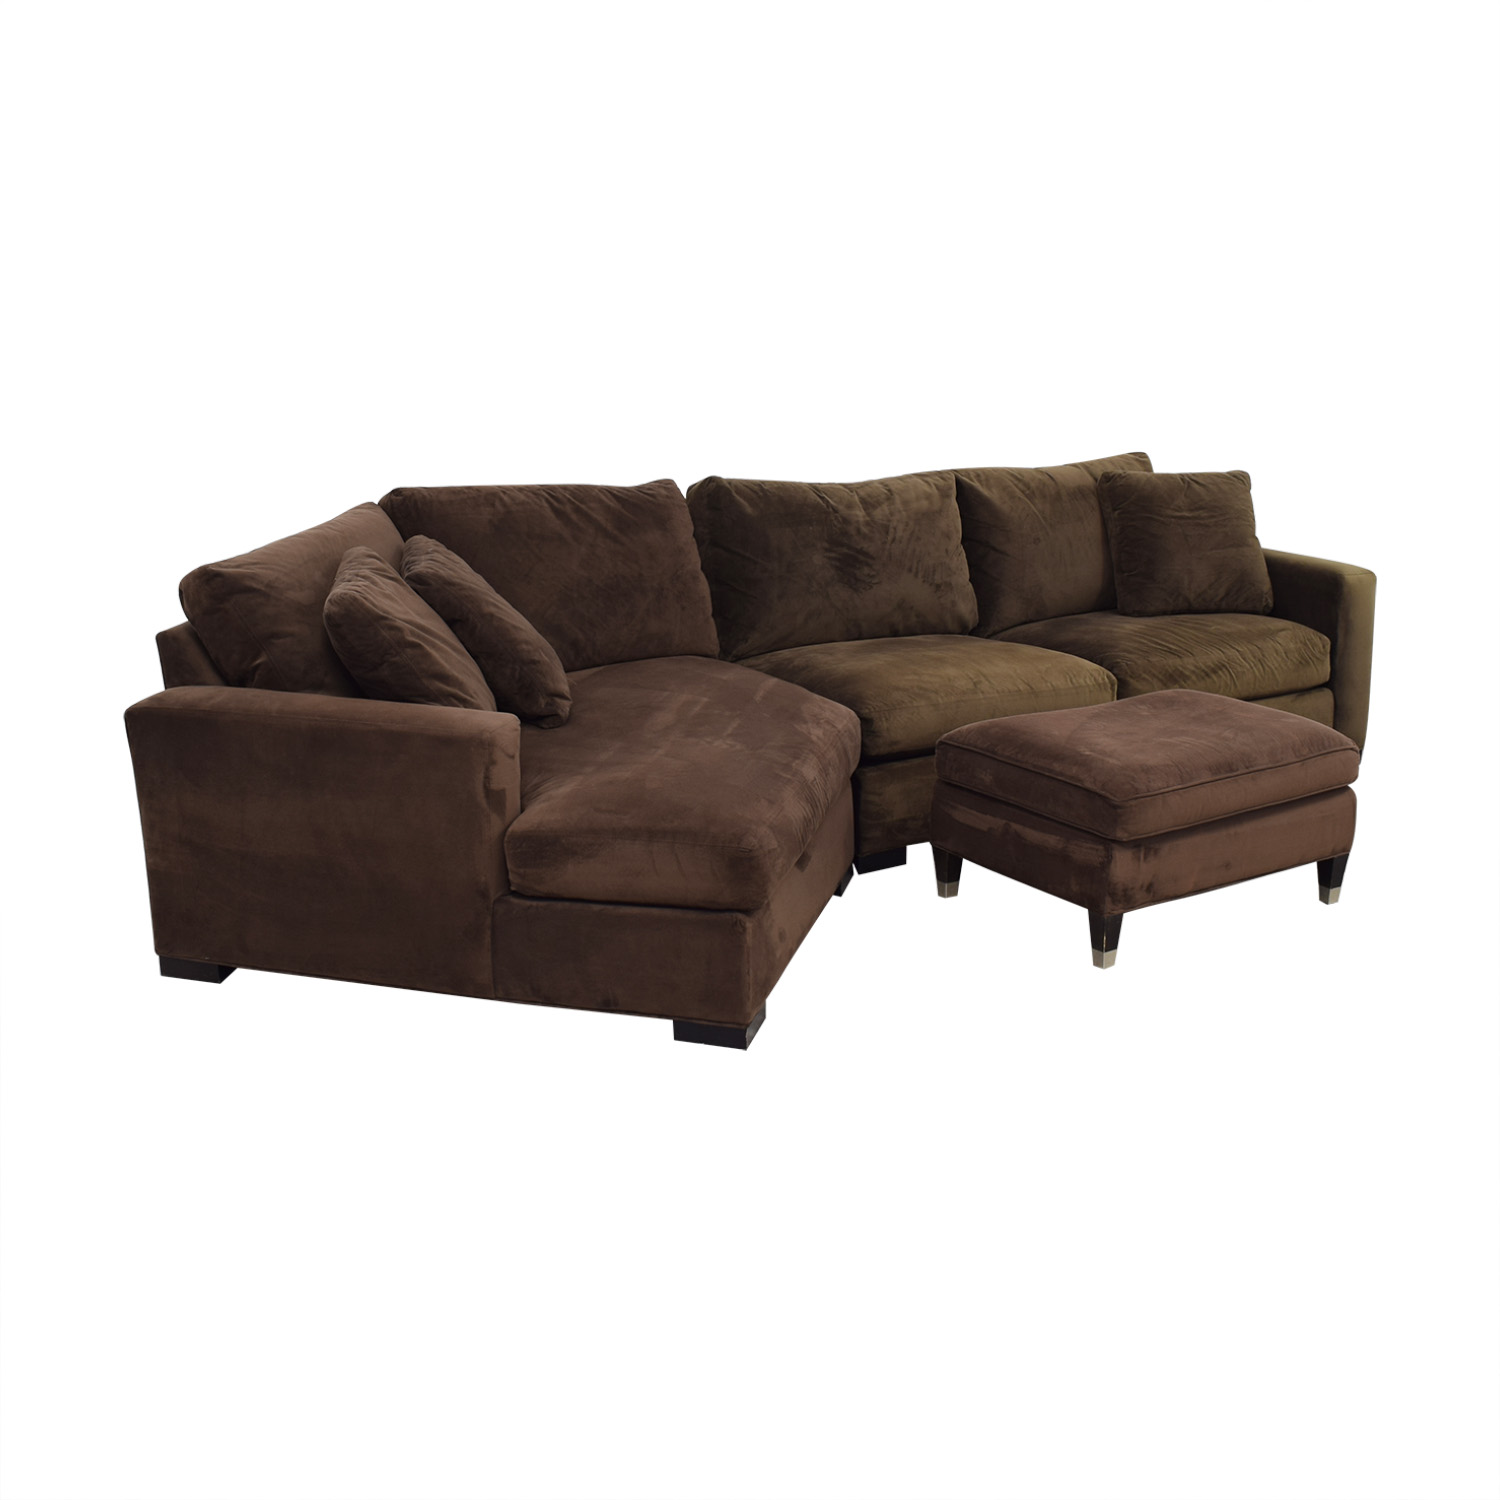 Room & Board Room & Board Metro Custom Sectional for sale